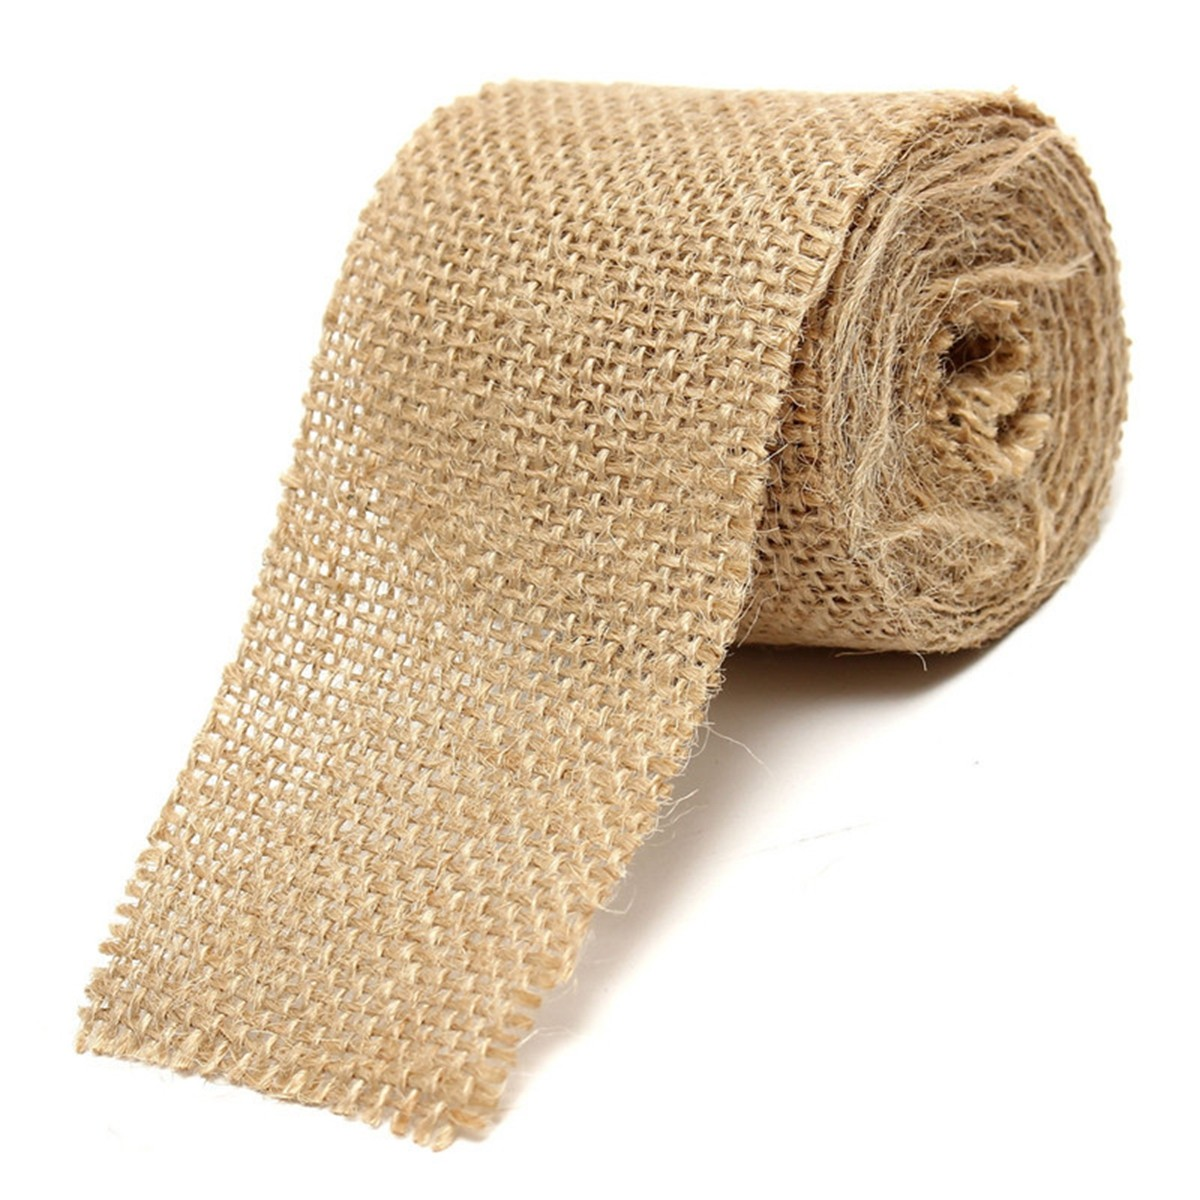 2M Jute Hessian Burlap Natural Craft Floristry Ribbon Rustic Wedding Party Decoration